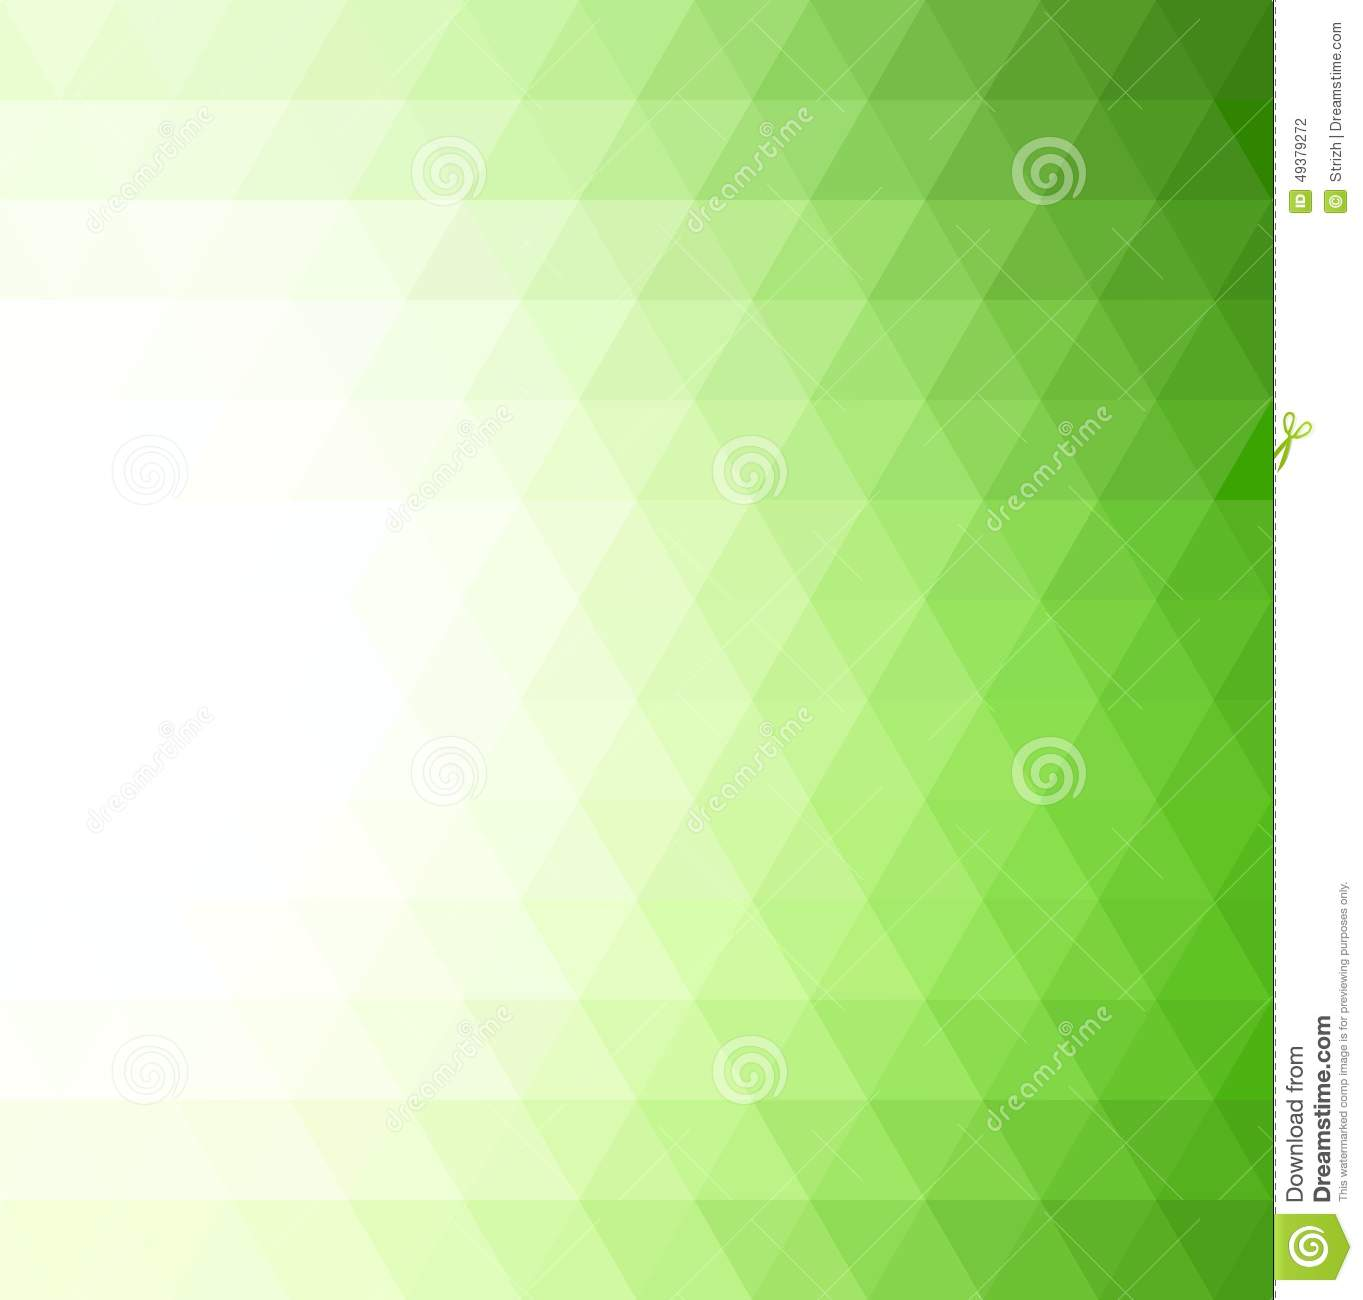 3d Animation Animals Wallpaper Abstract Green Geometric Technology Background Stock